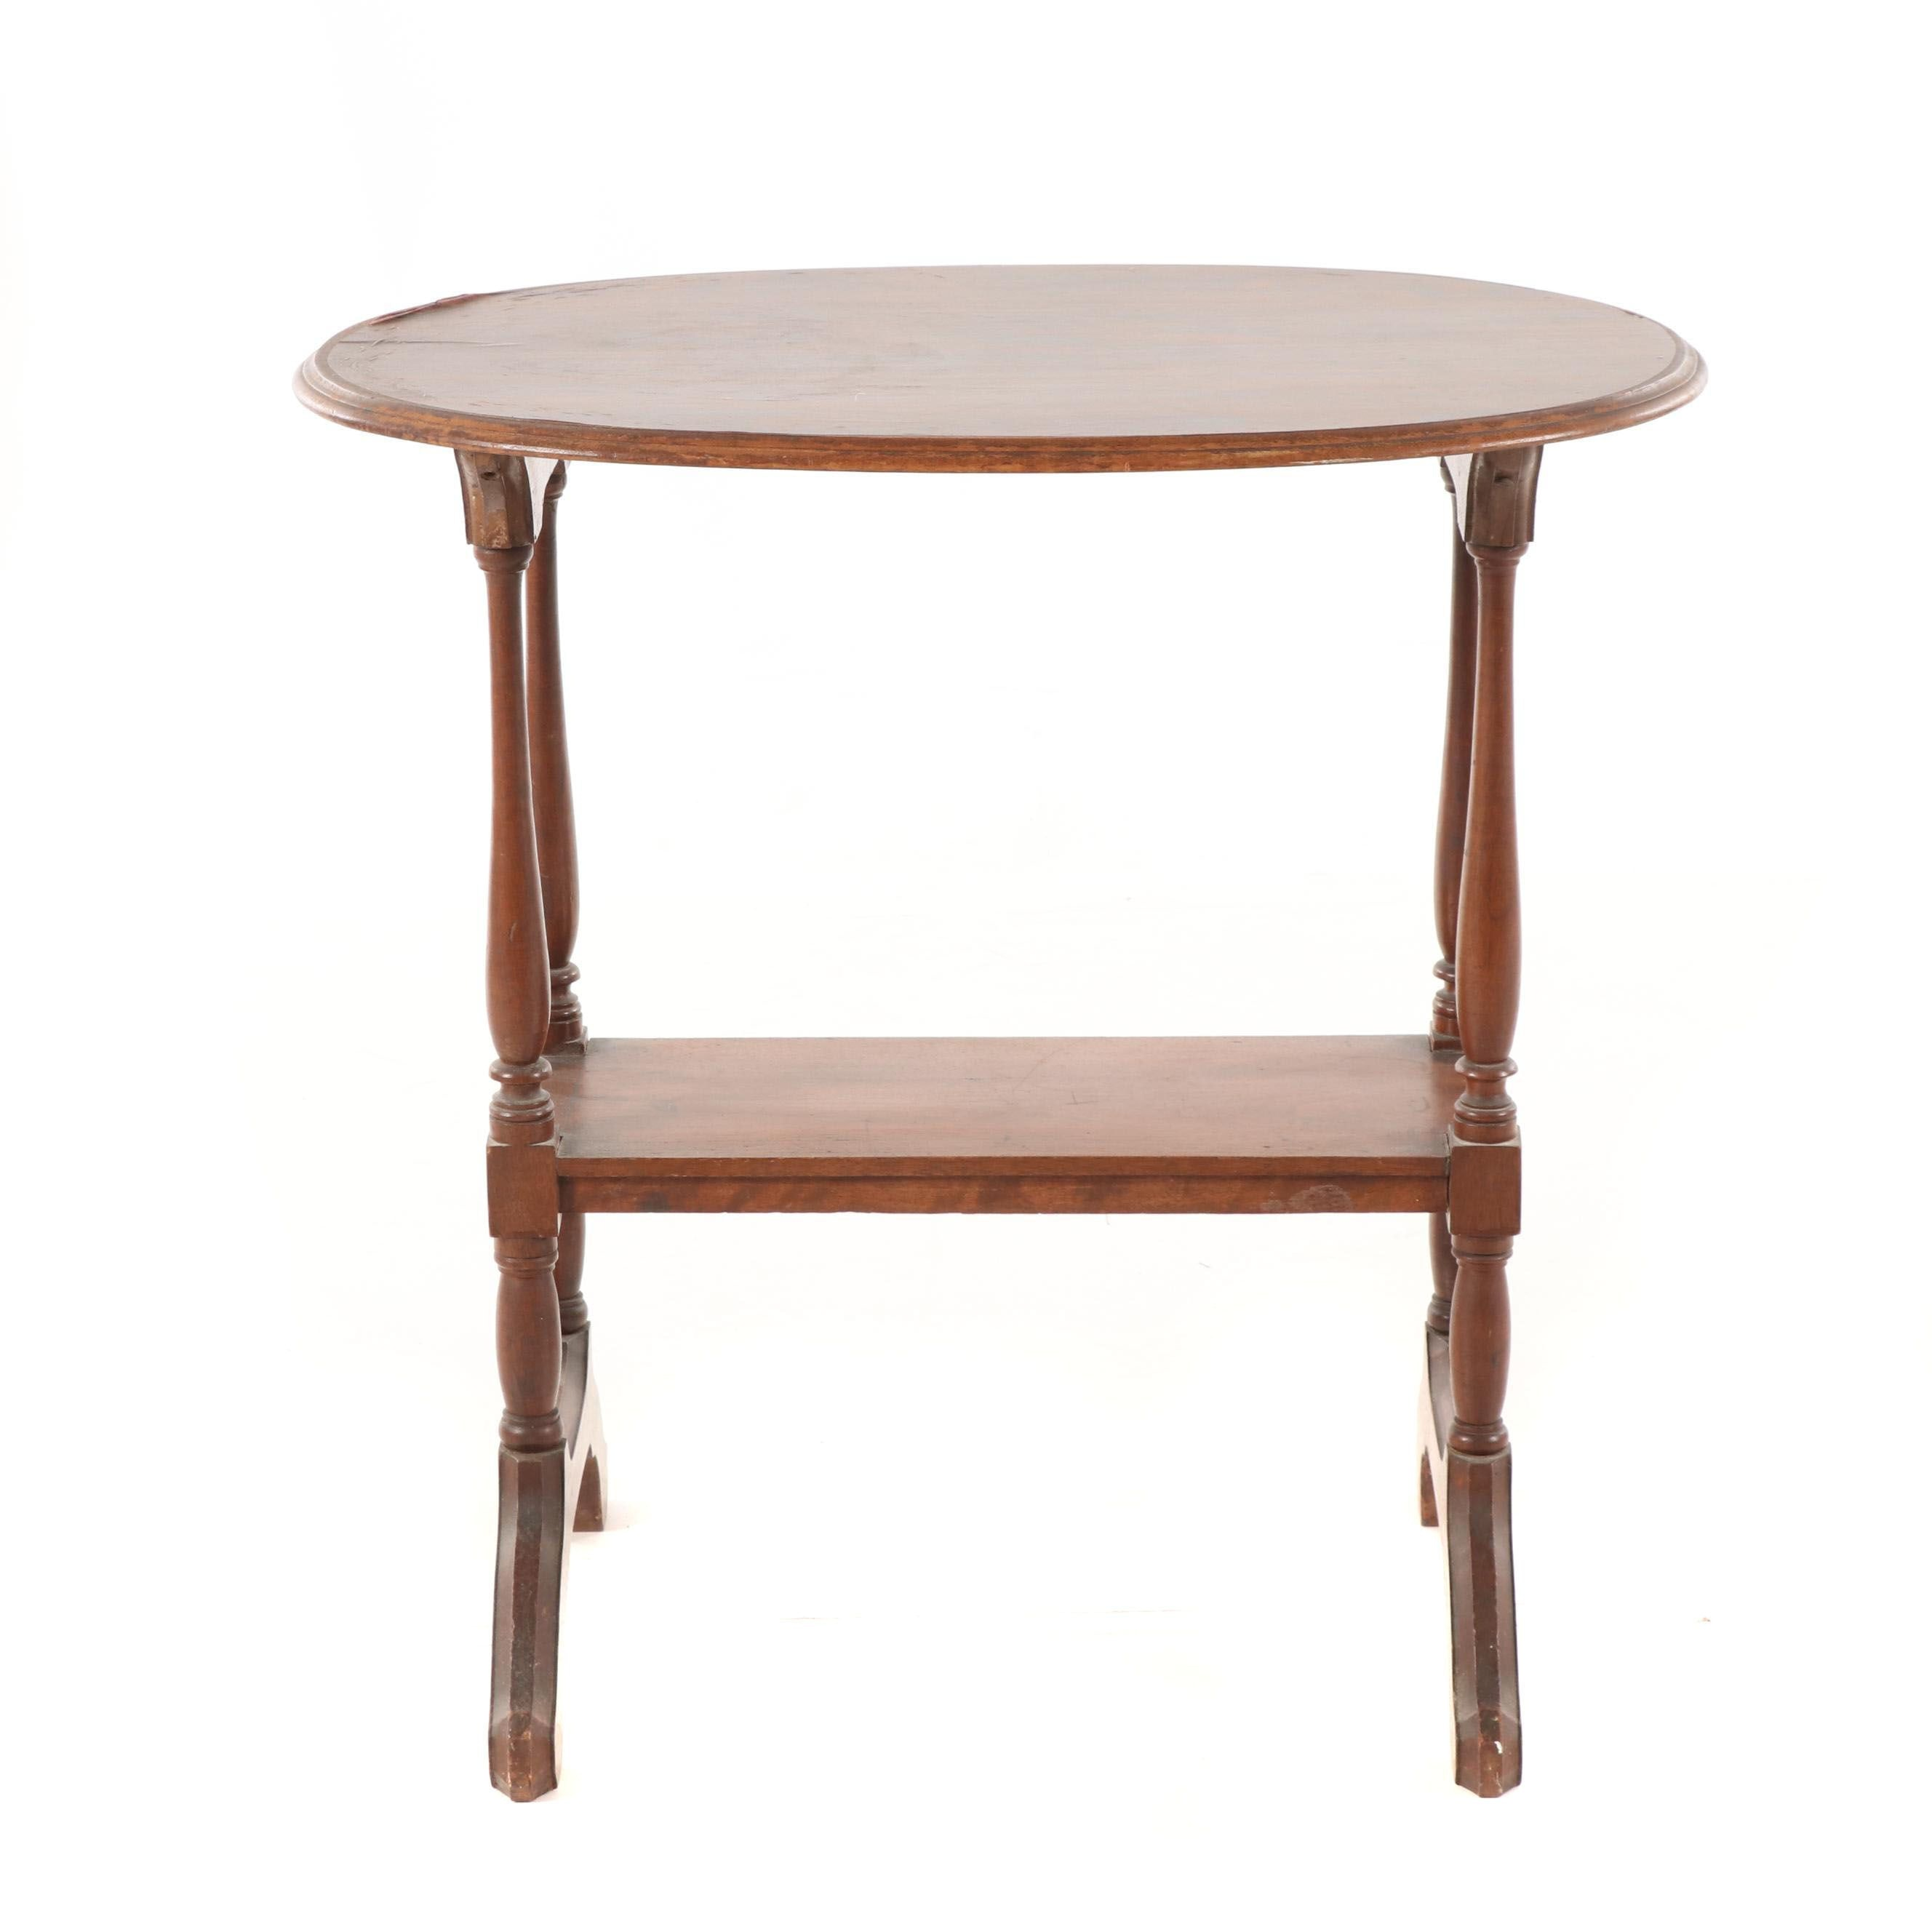 Federal Style Mahogany Two-Tier Side Table, Mid-20th Century